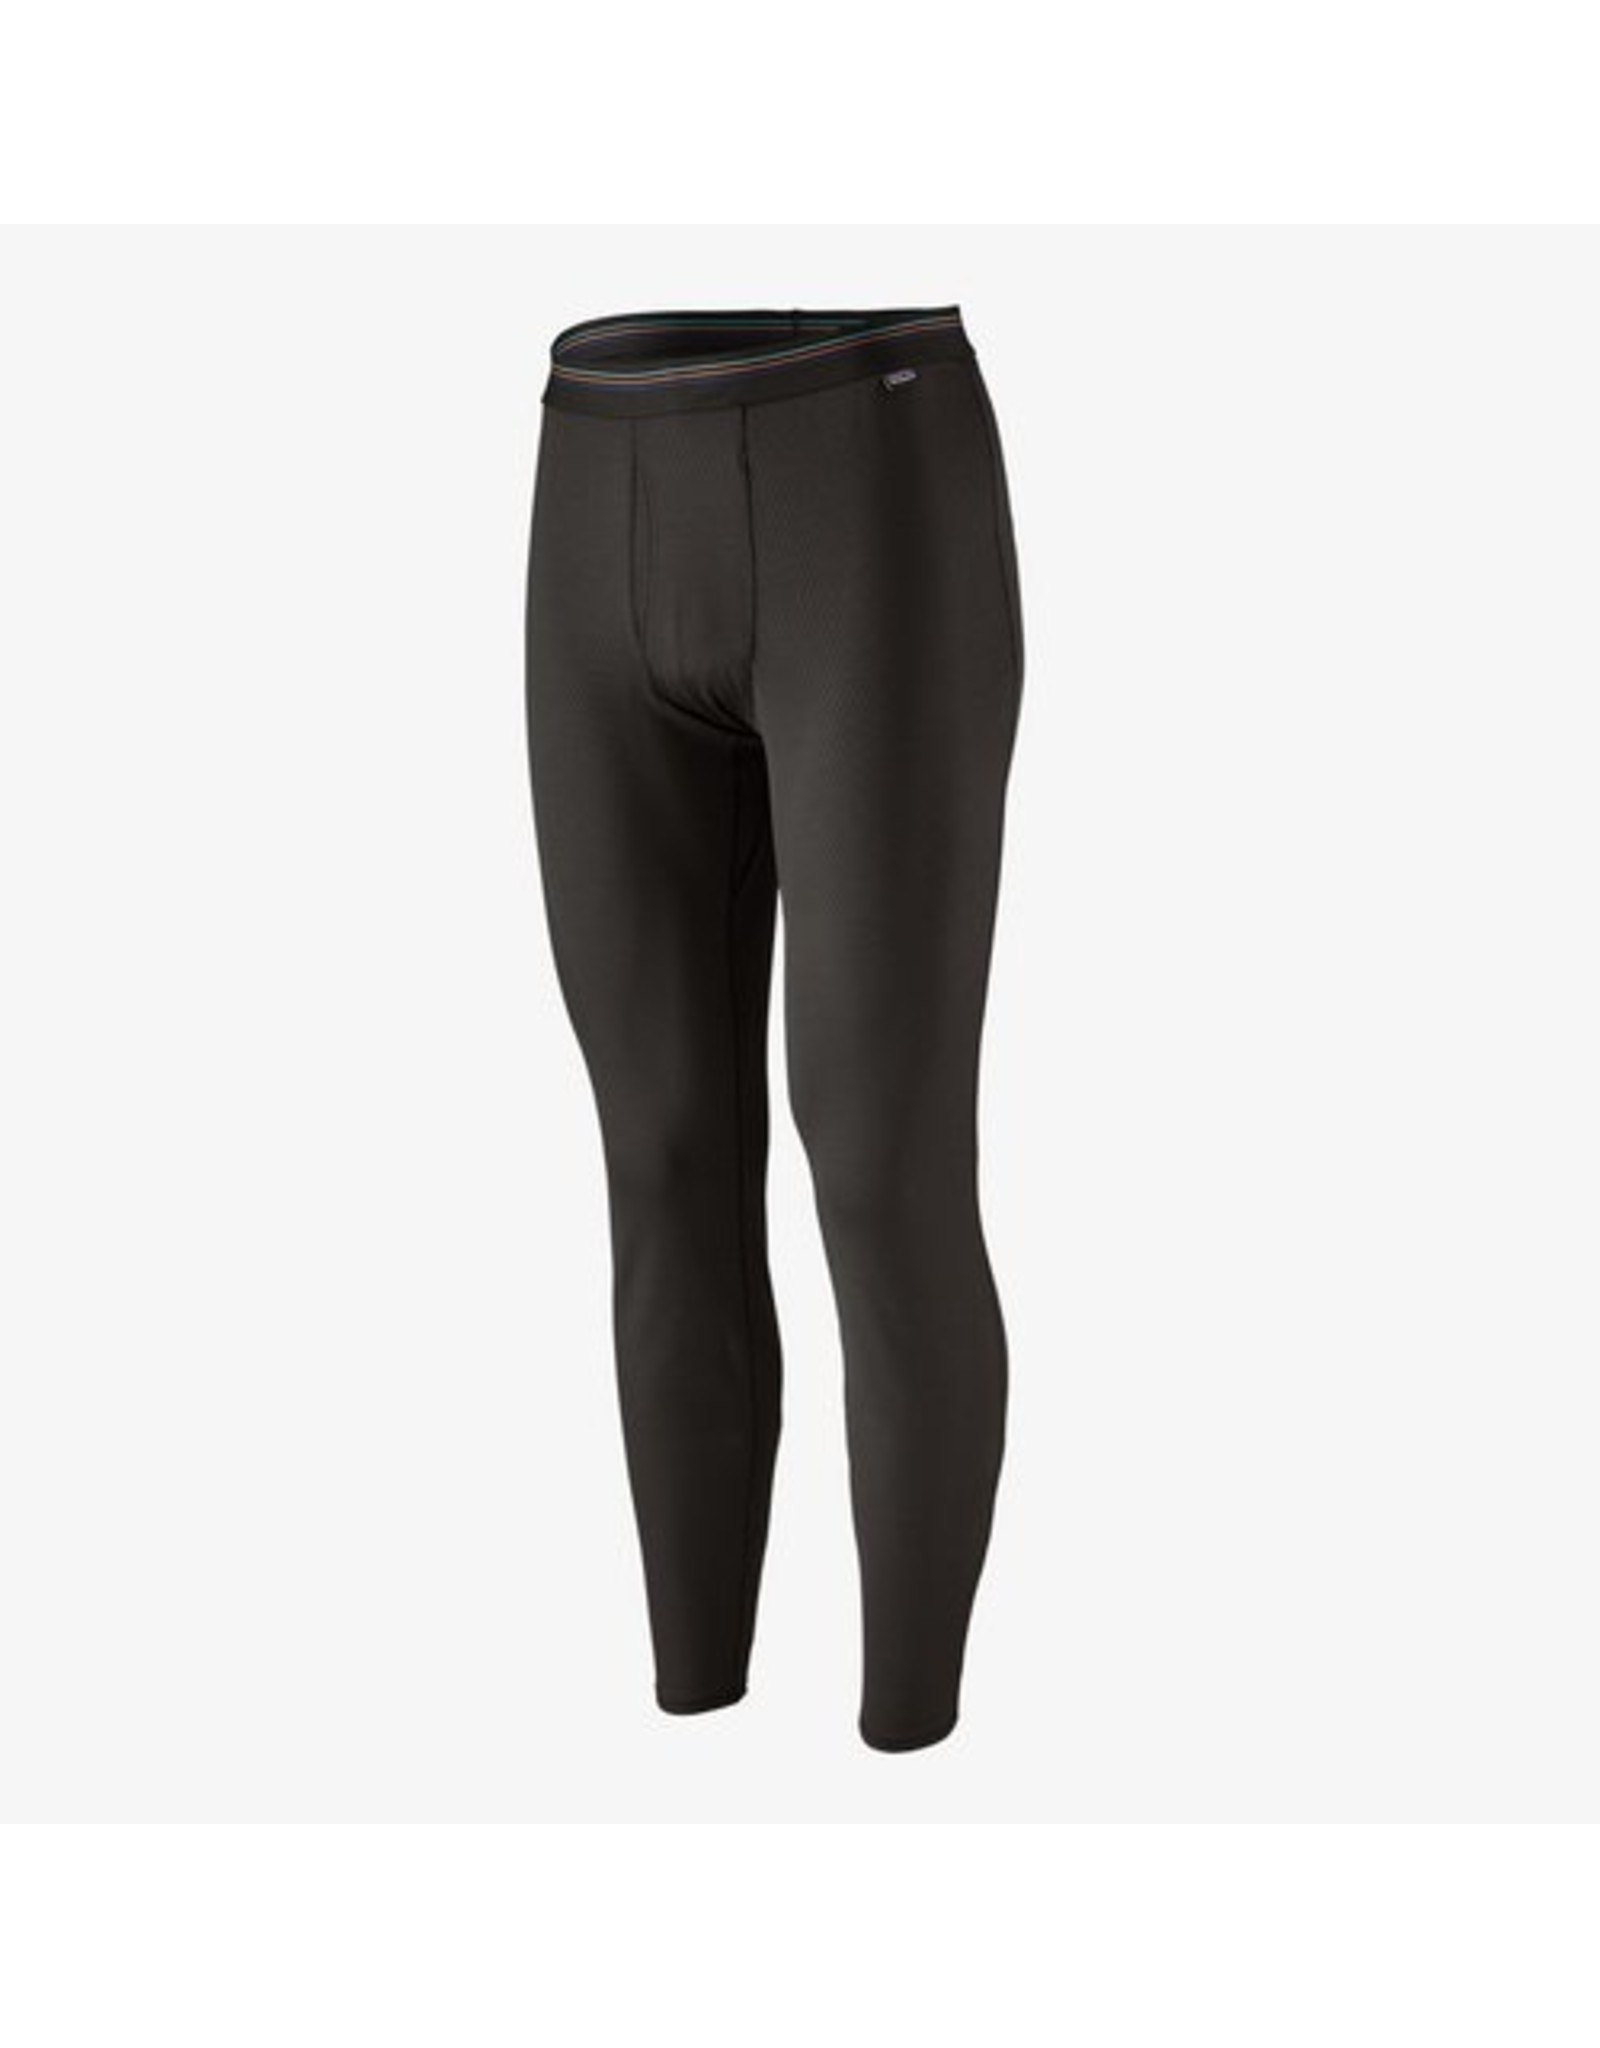 Patagonia Patagonia - M's Capilene Mid Weight Bottoms